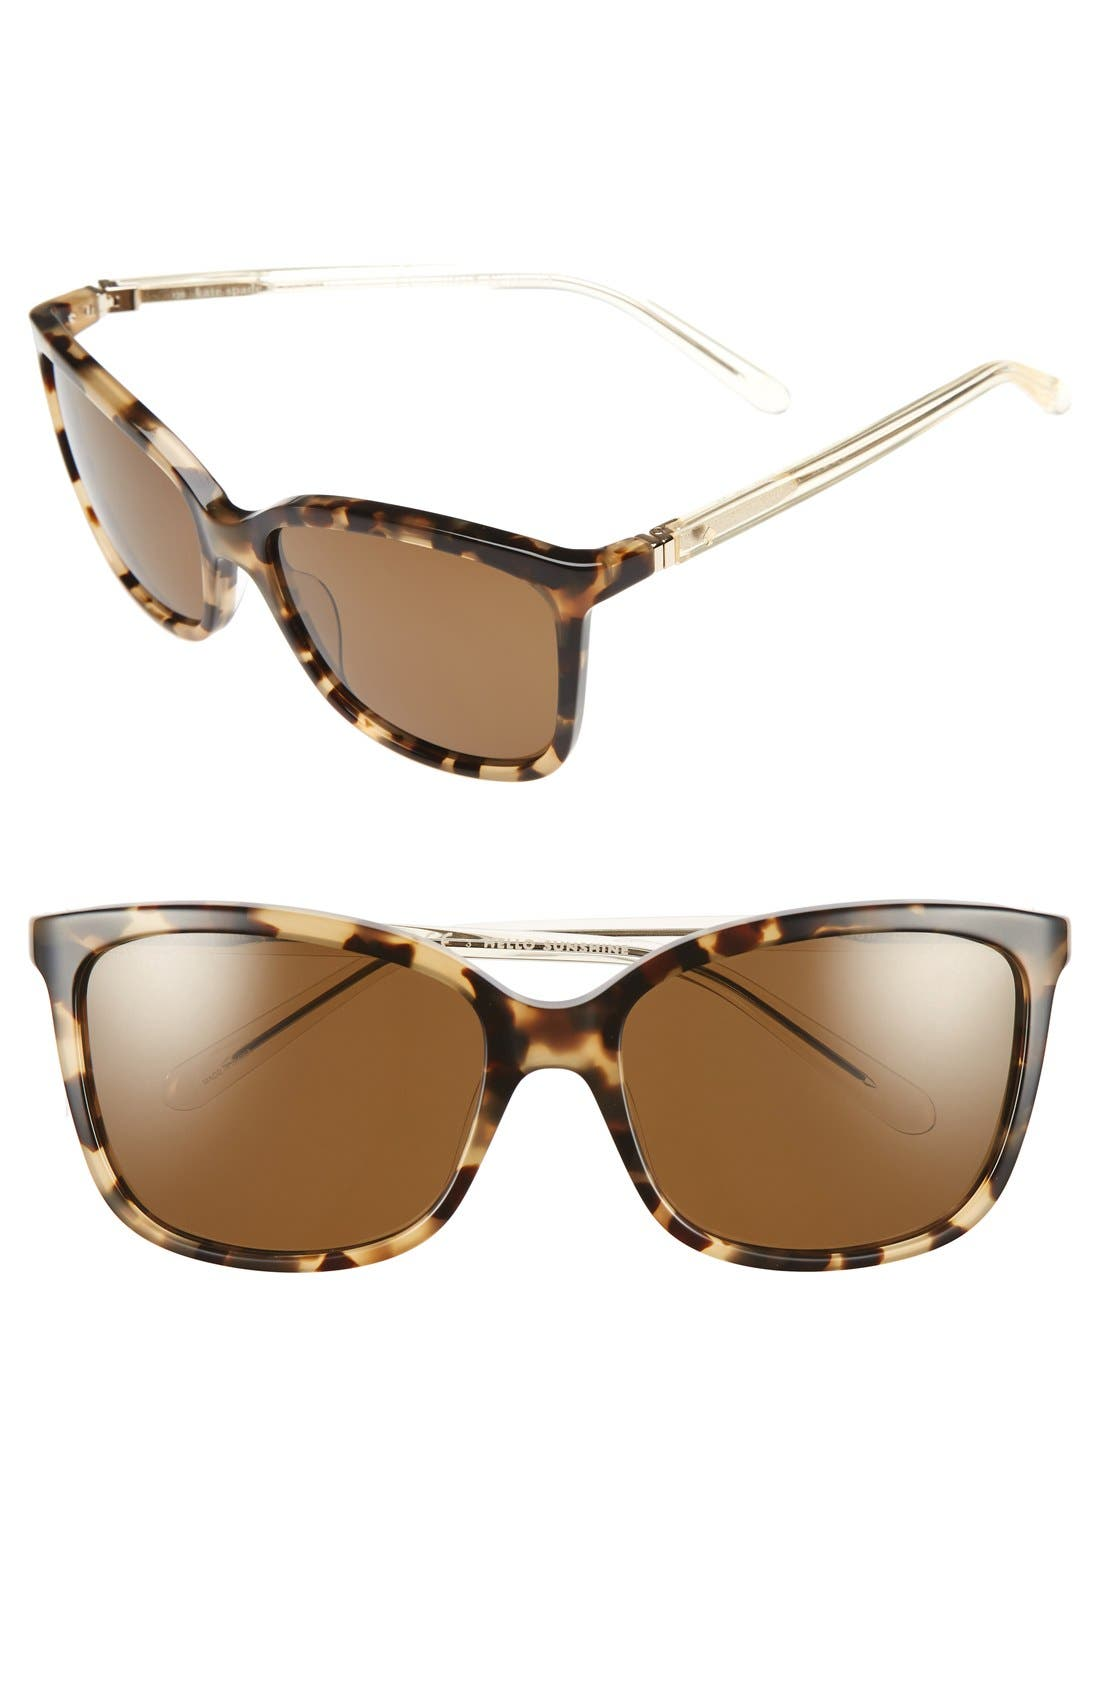 KATE SPADE NEW YORK kasie 55mm polarized sunglasses